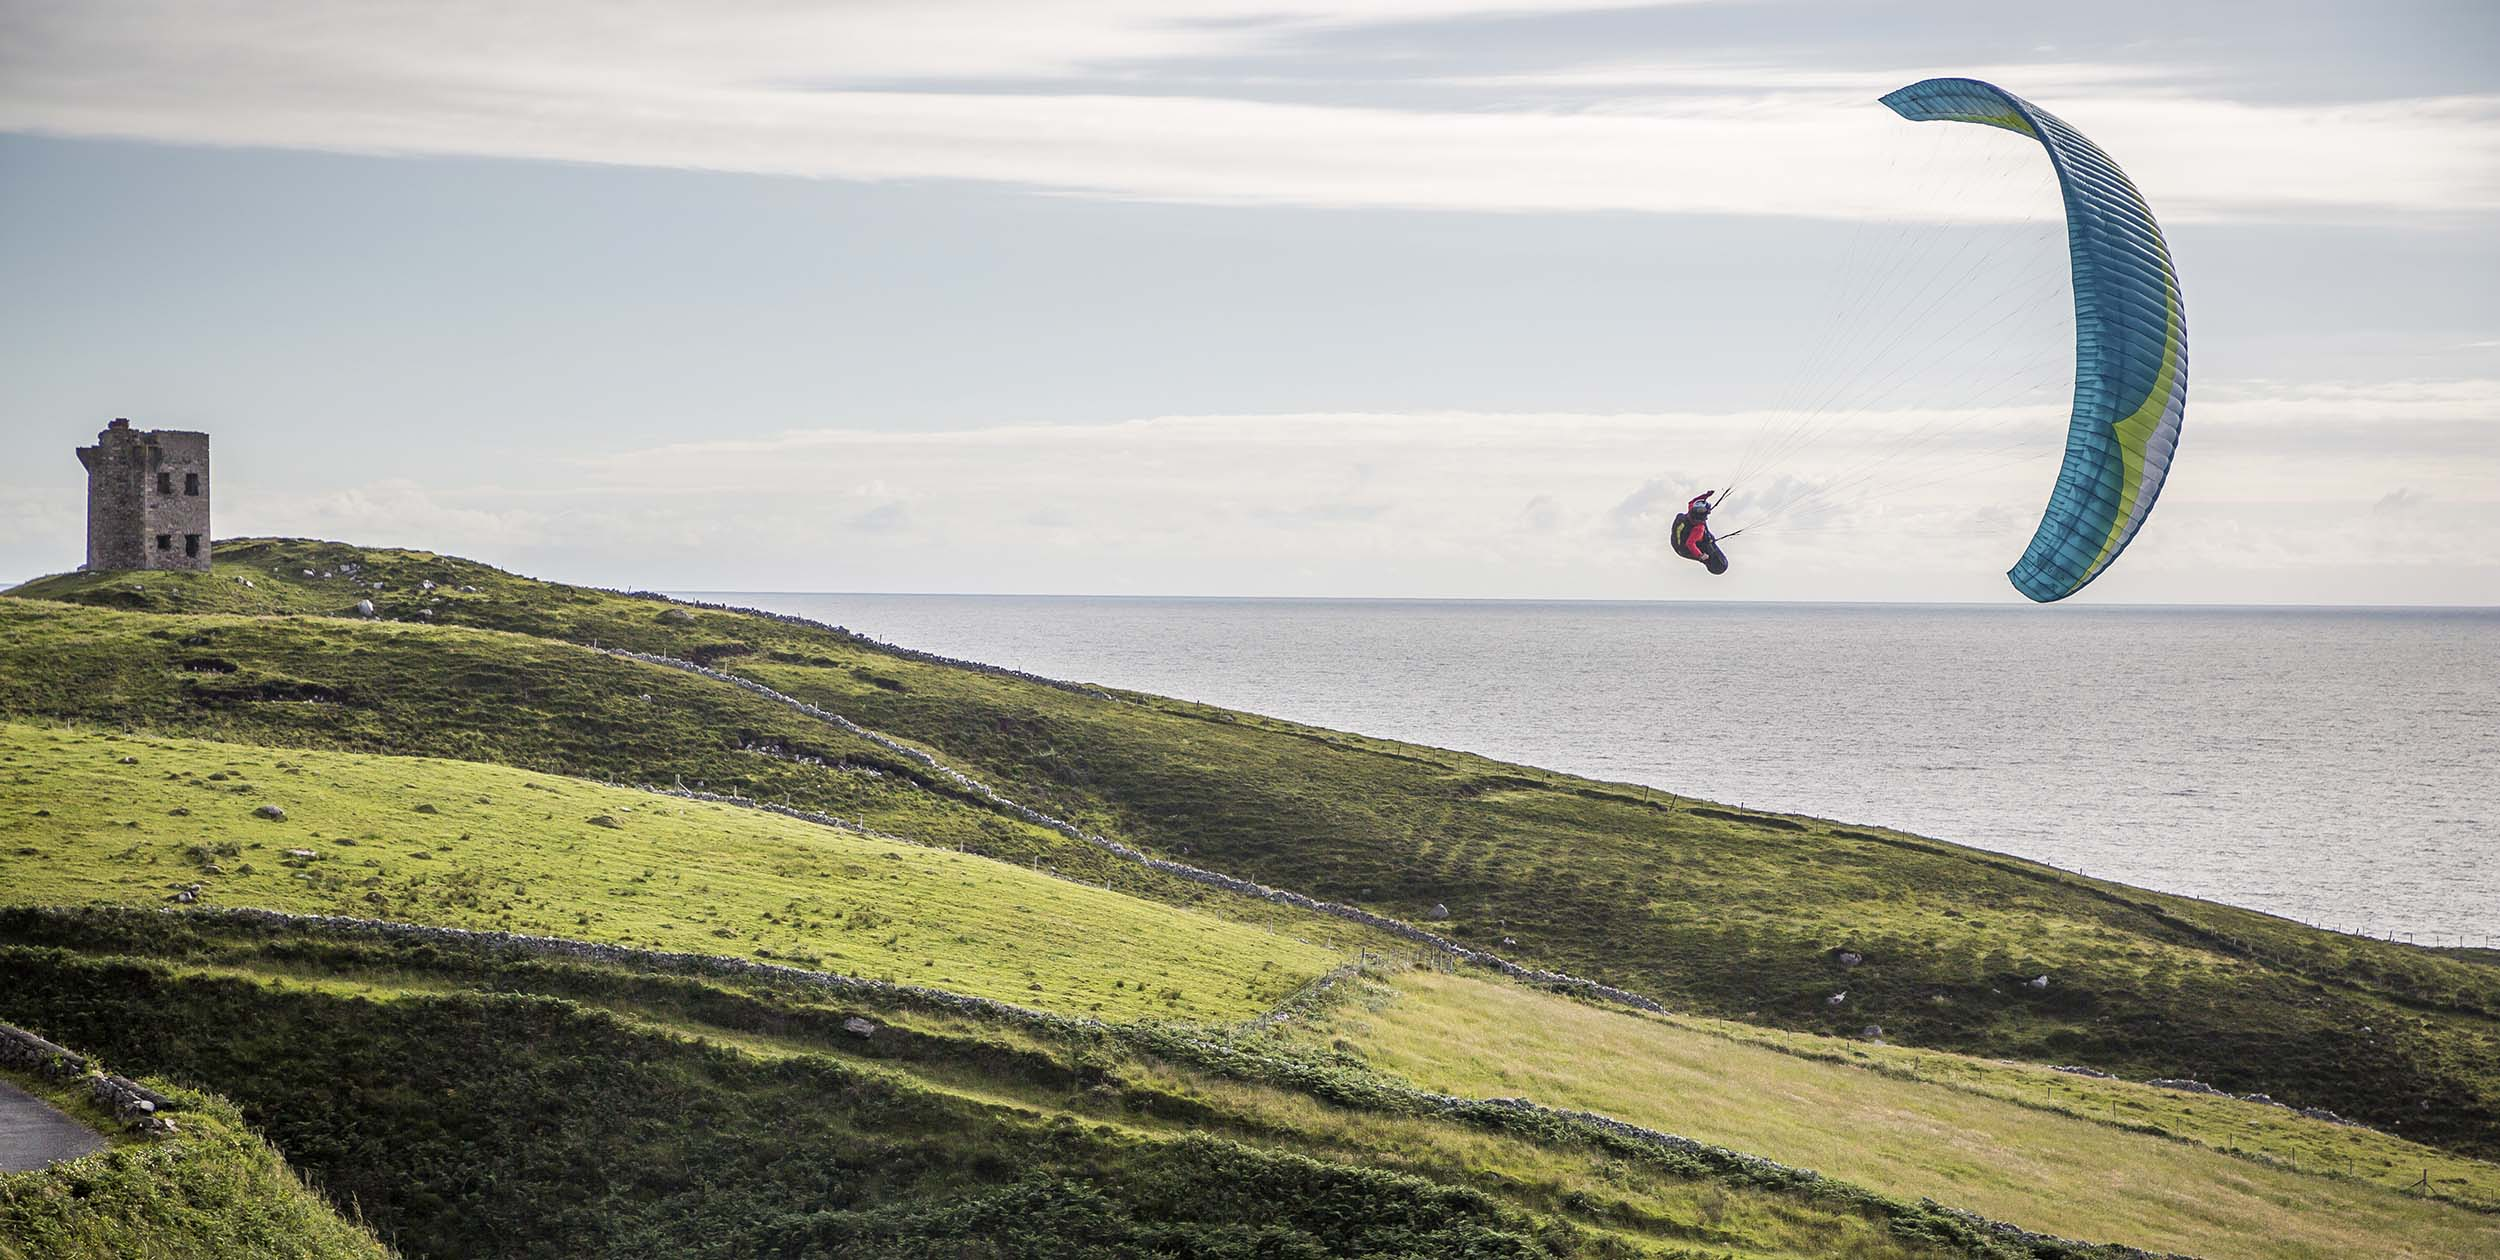 Will Gadd soaring a paragliding in Ireland. Photo: John Price / Red Bull Content Pool